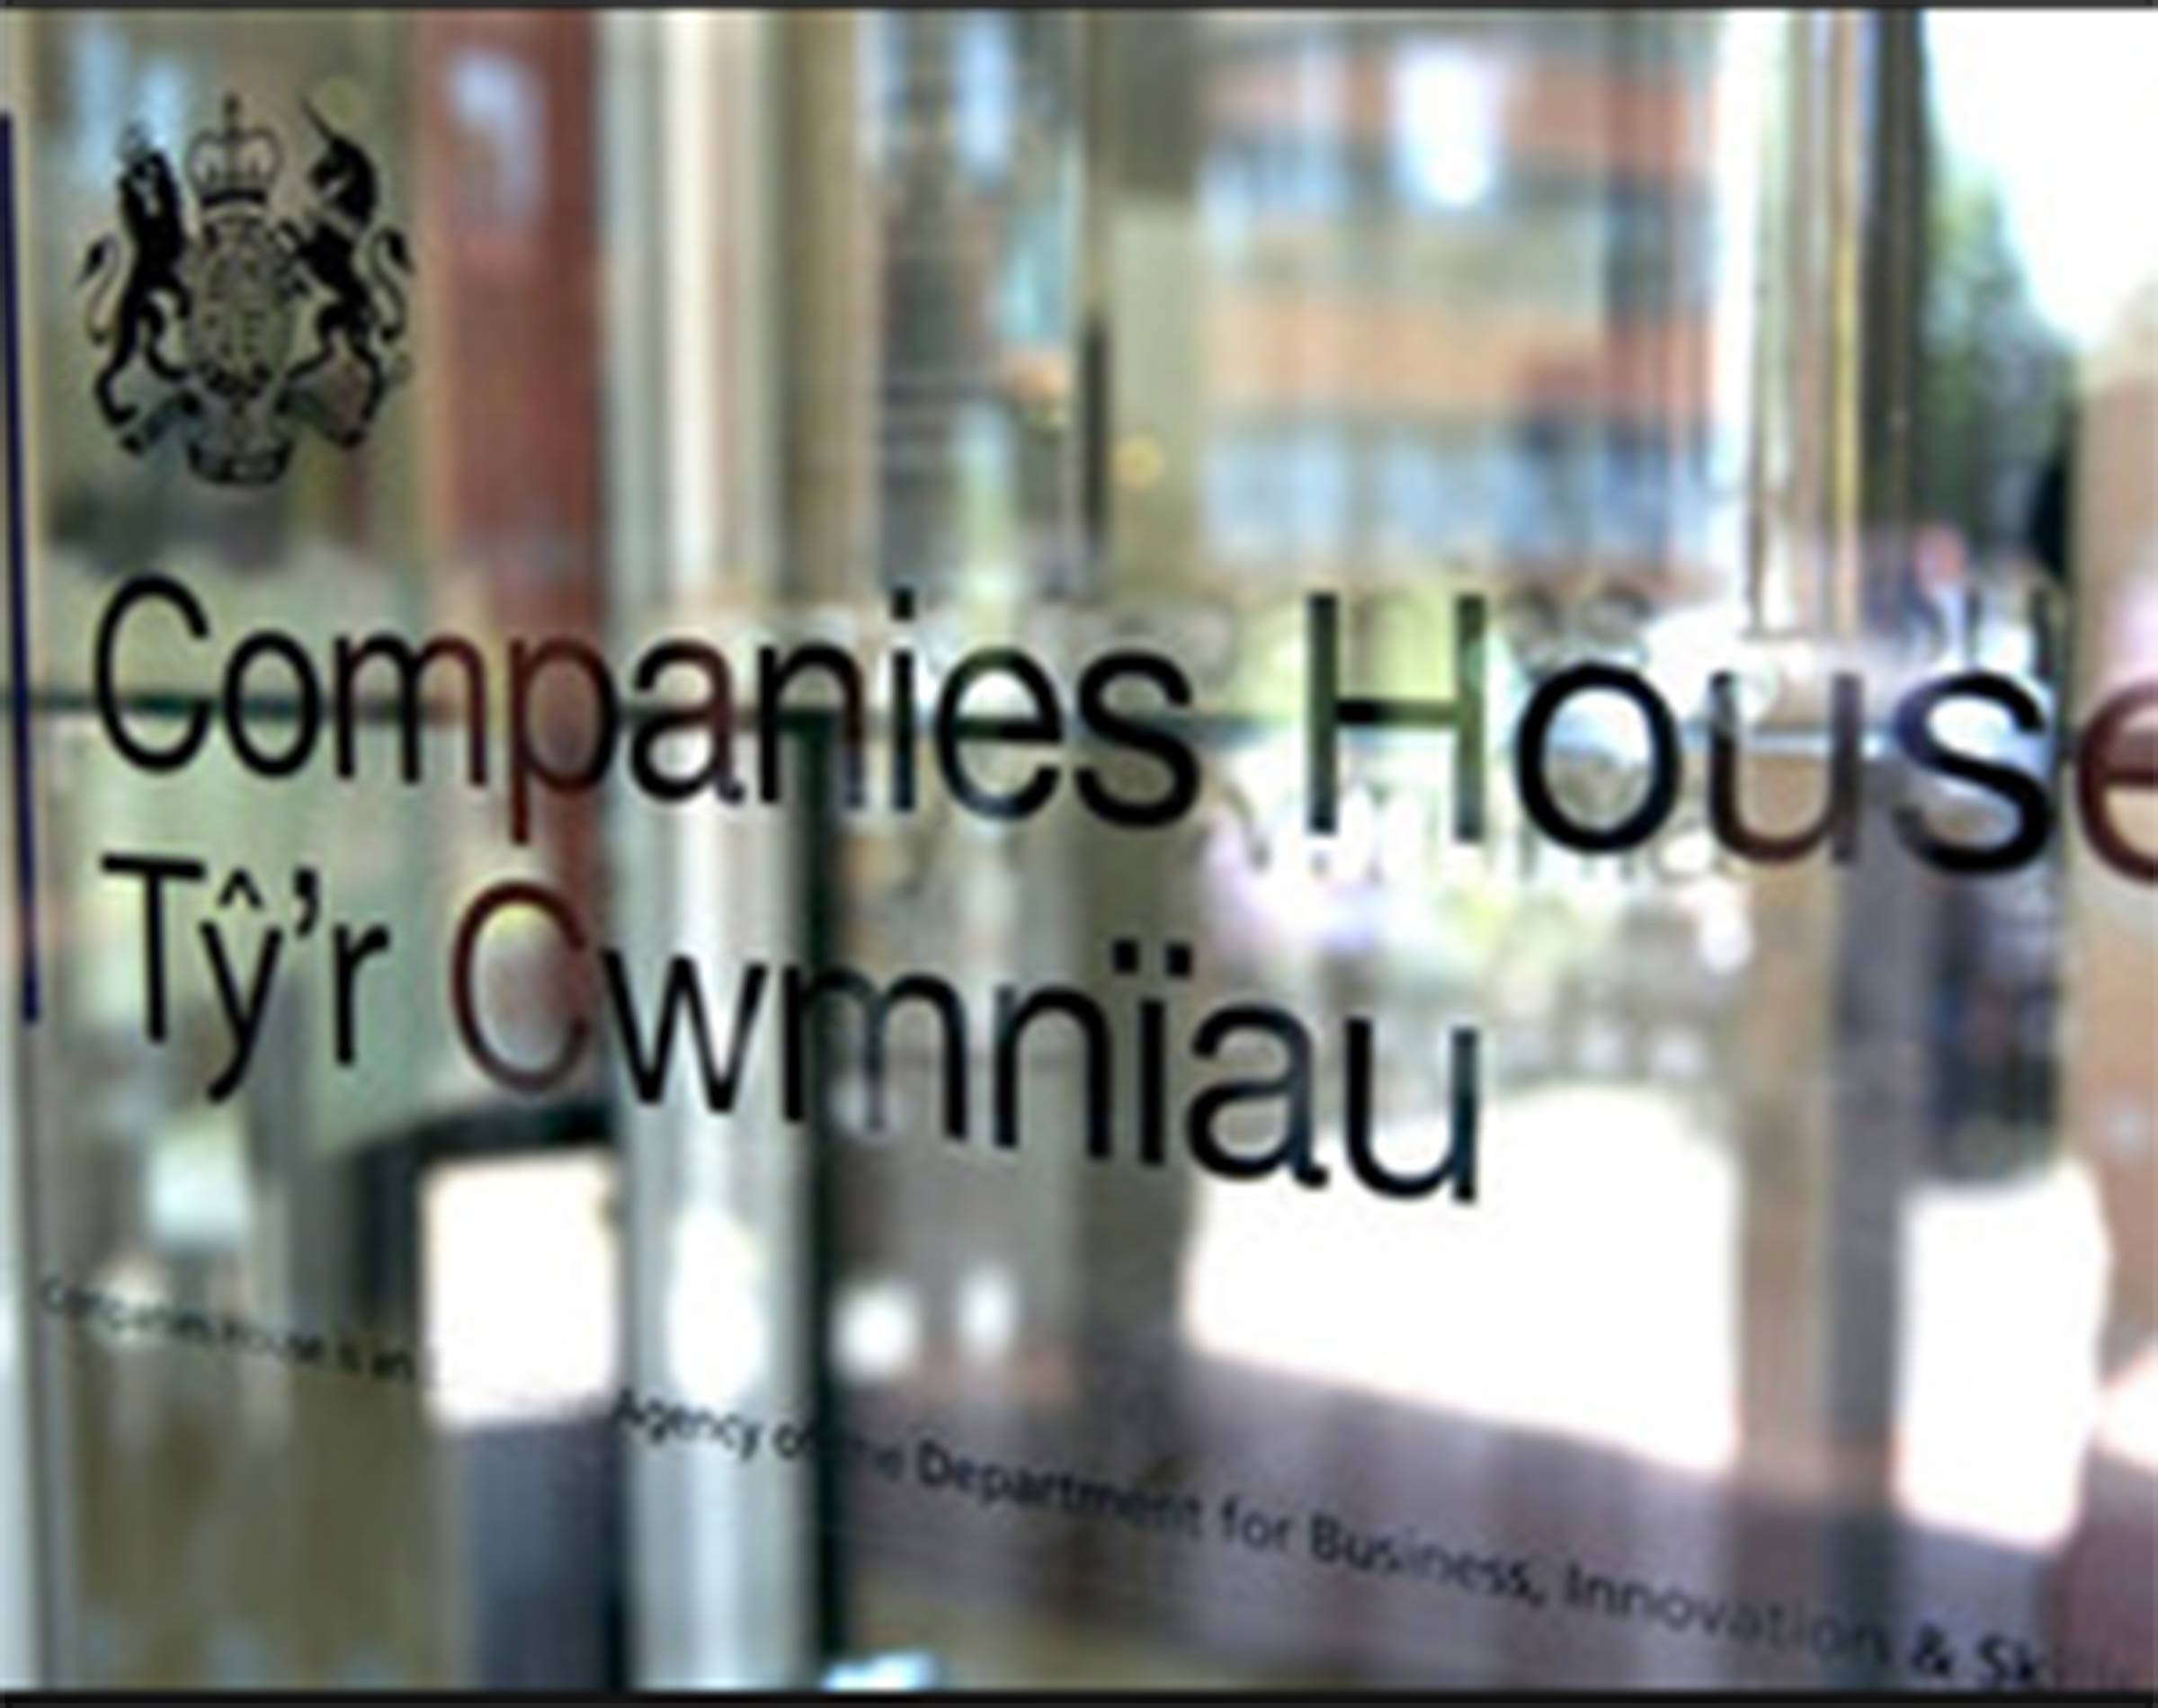 Accounted For Companies House services